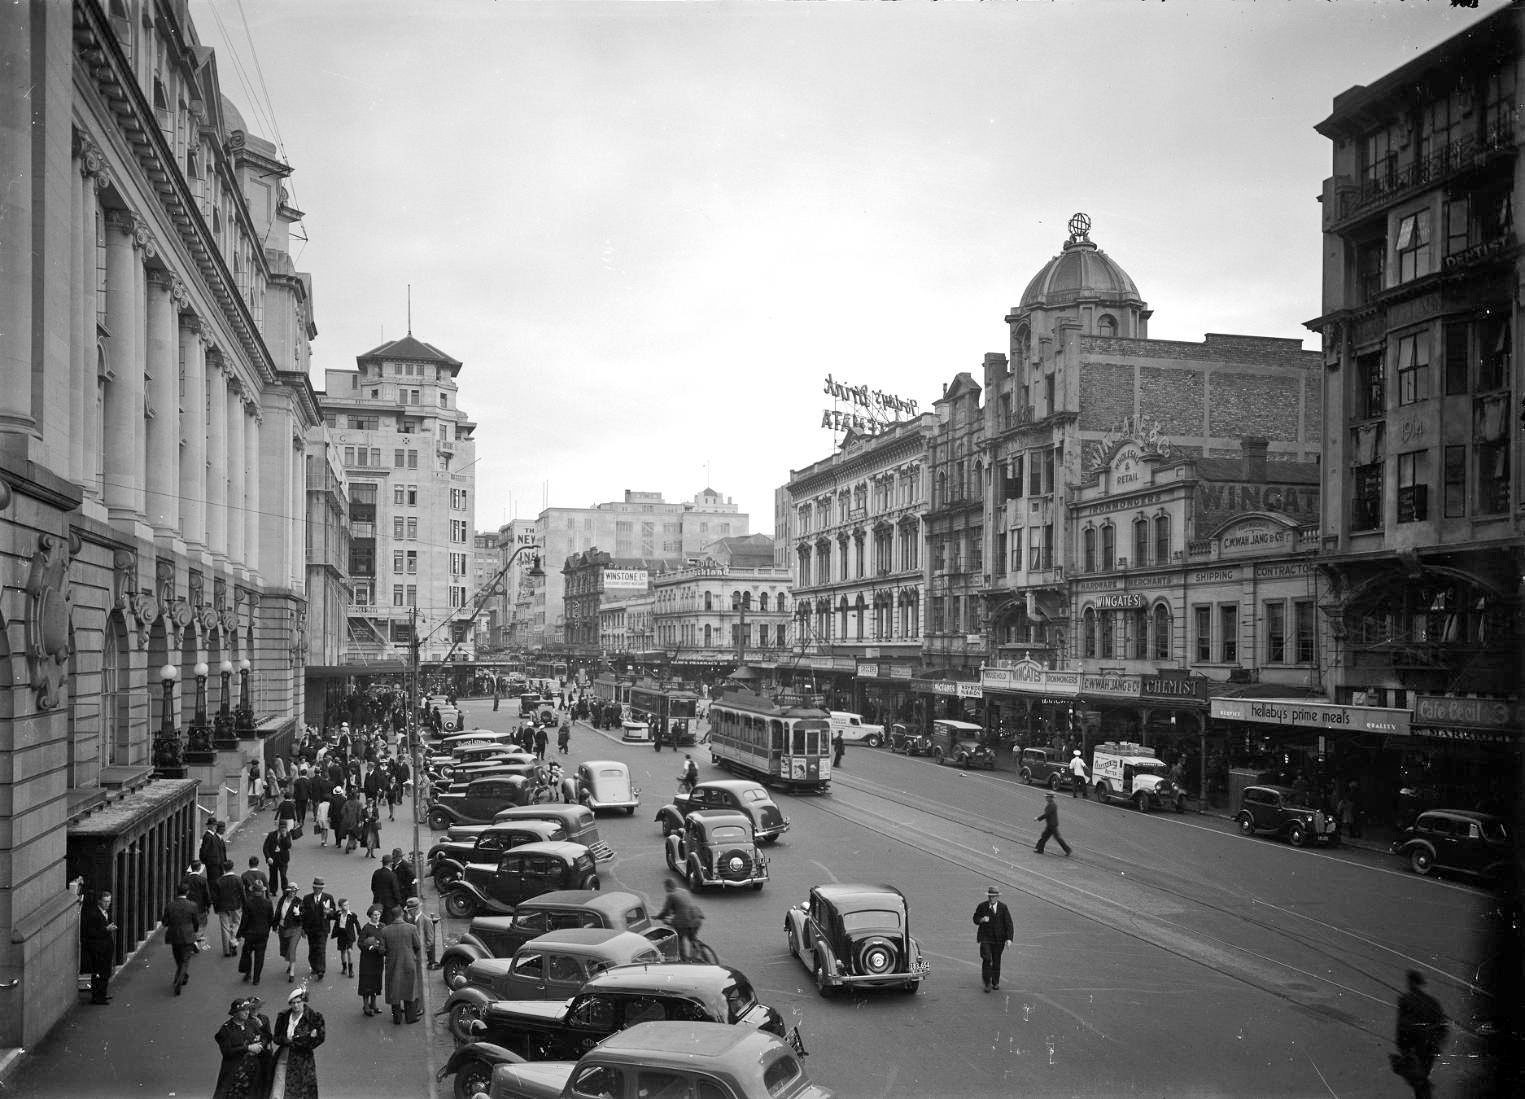 LOWER QUEEN STREET 1930s